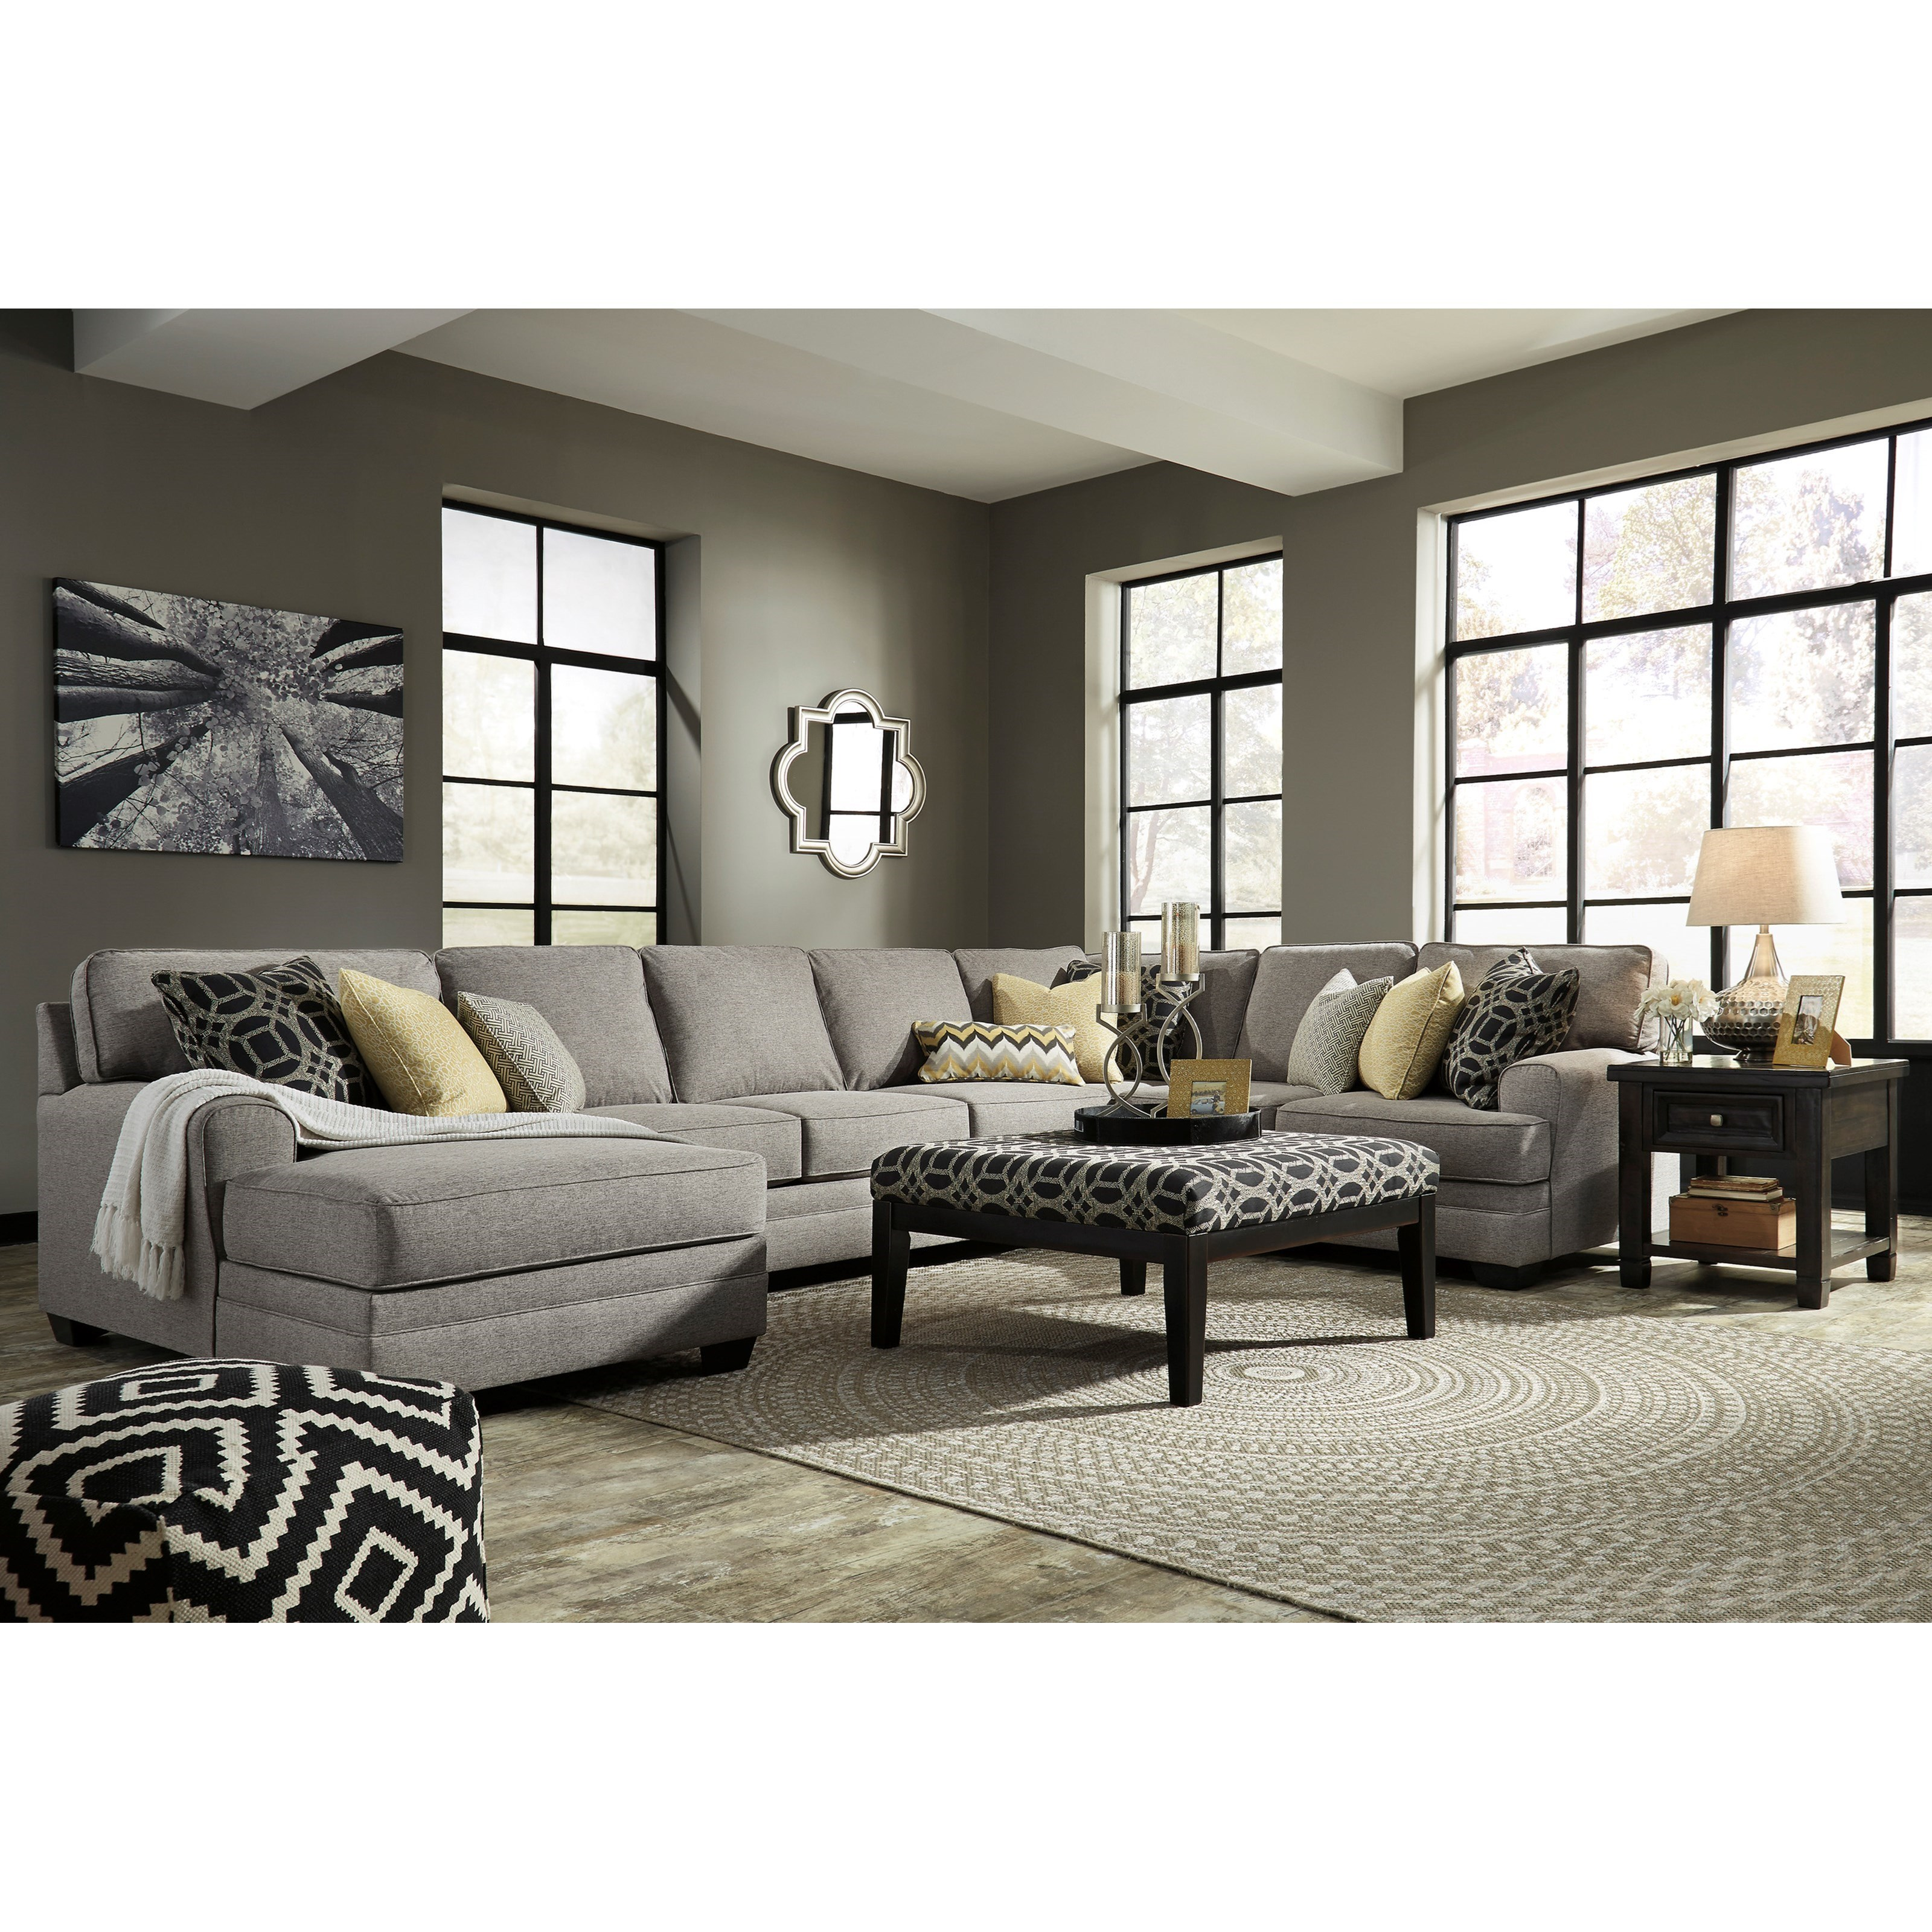 Benchcraft cresson contemporary 4 piece sectional with for Benchcraft chaise lounge